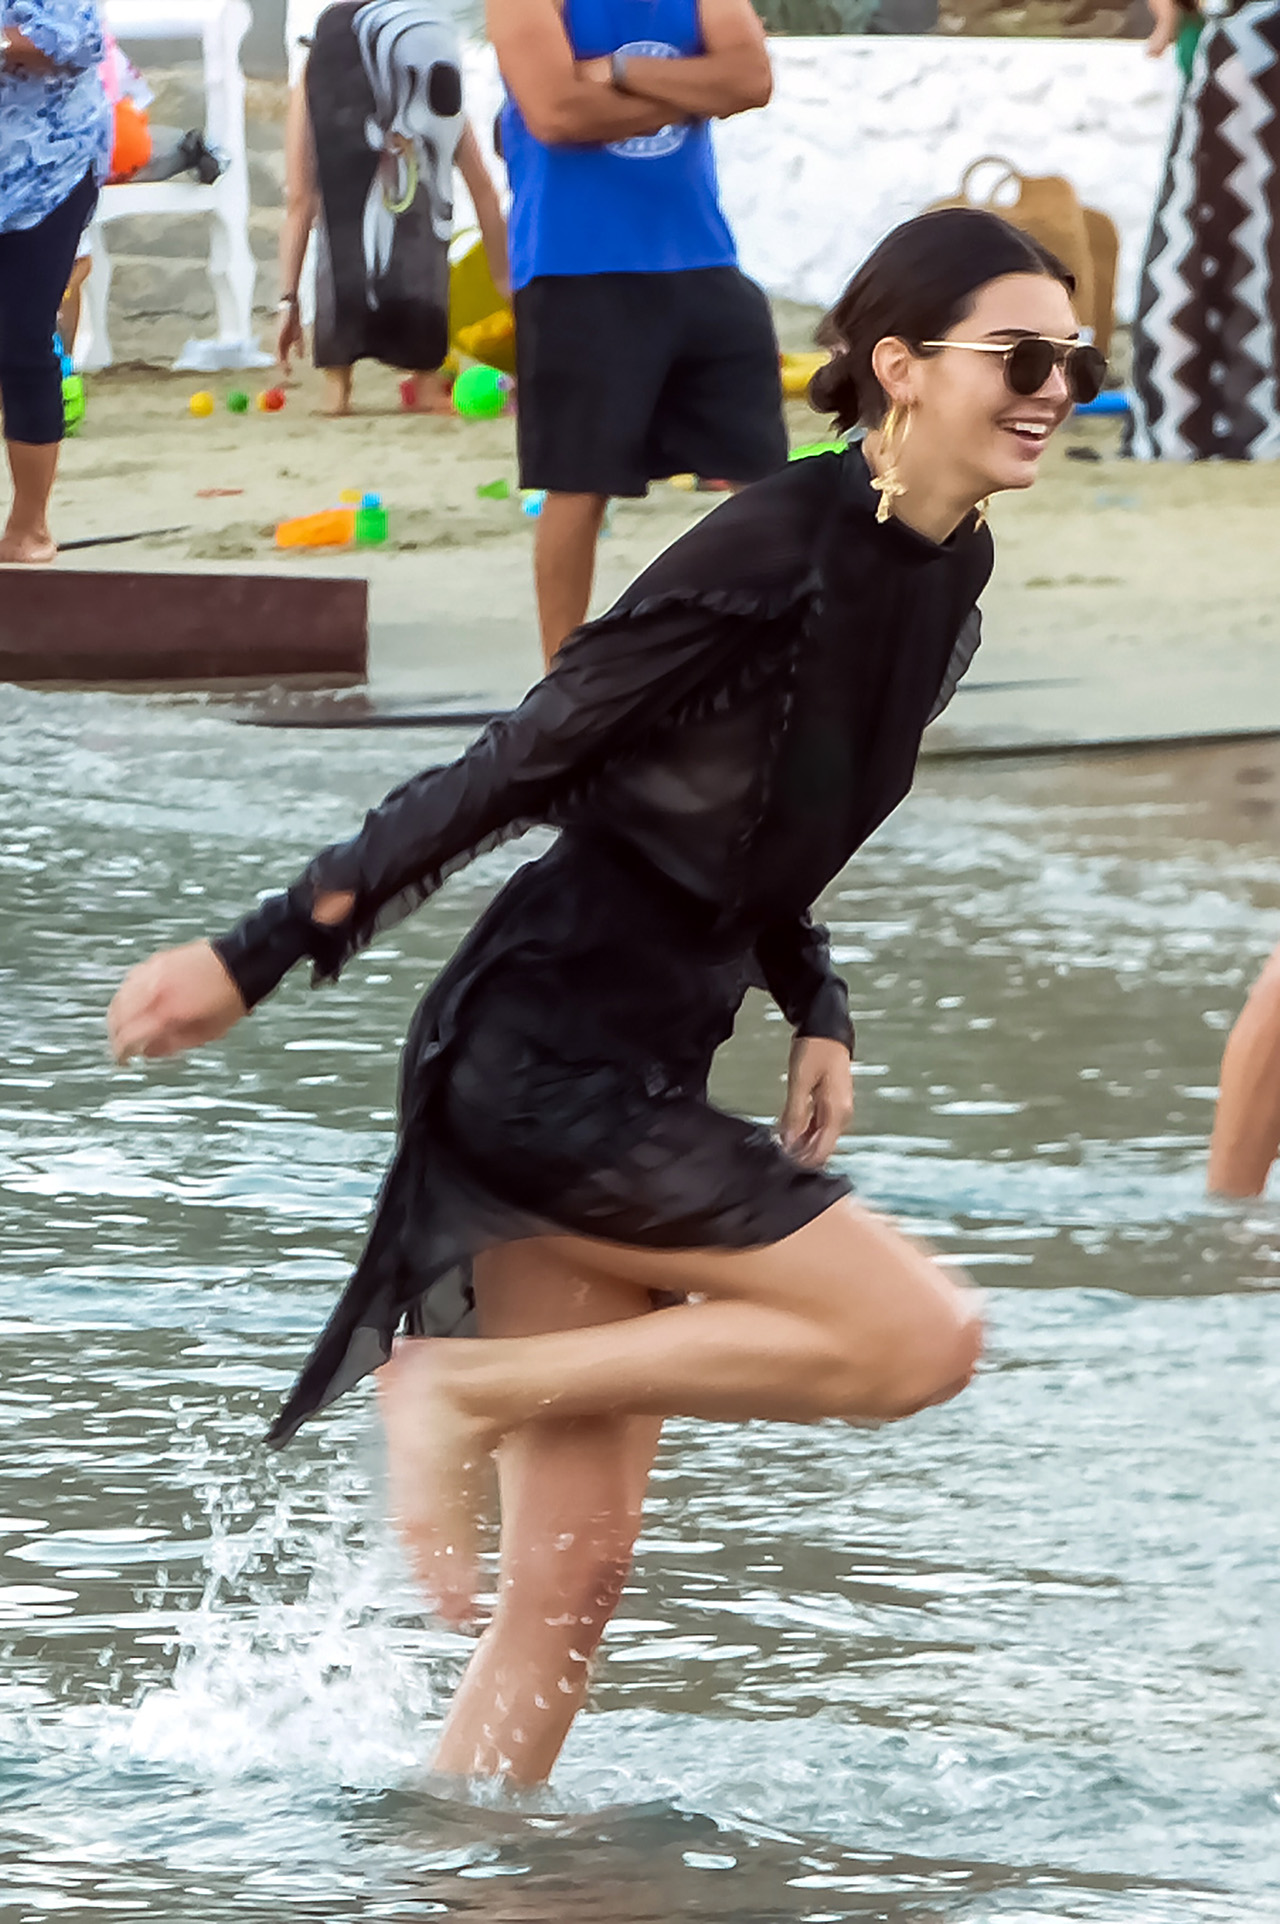 Kendall Jenner seen at a party with Bella Hadid and other friends on Nammos Beach, Mykonos Island. 09 Jul 2017 Pictured: Kendall Jenner. Photo credit: MEGA TheMegaAgency.com +1 888 505 6342 (Mega Agency TagID: MEGA52718_003.jpg) [Photo via Mega Agency]